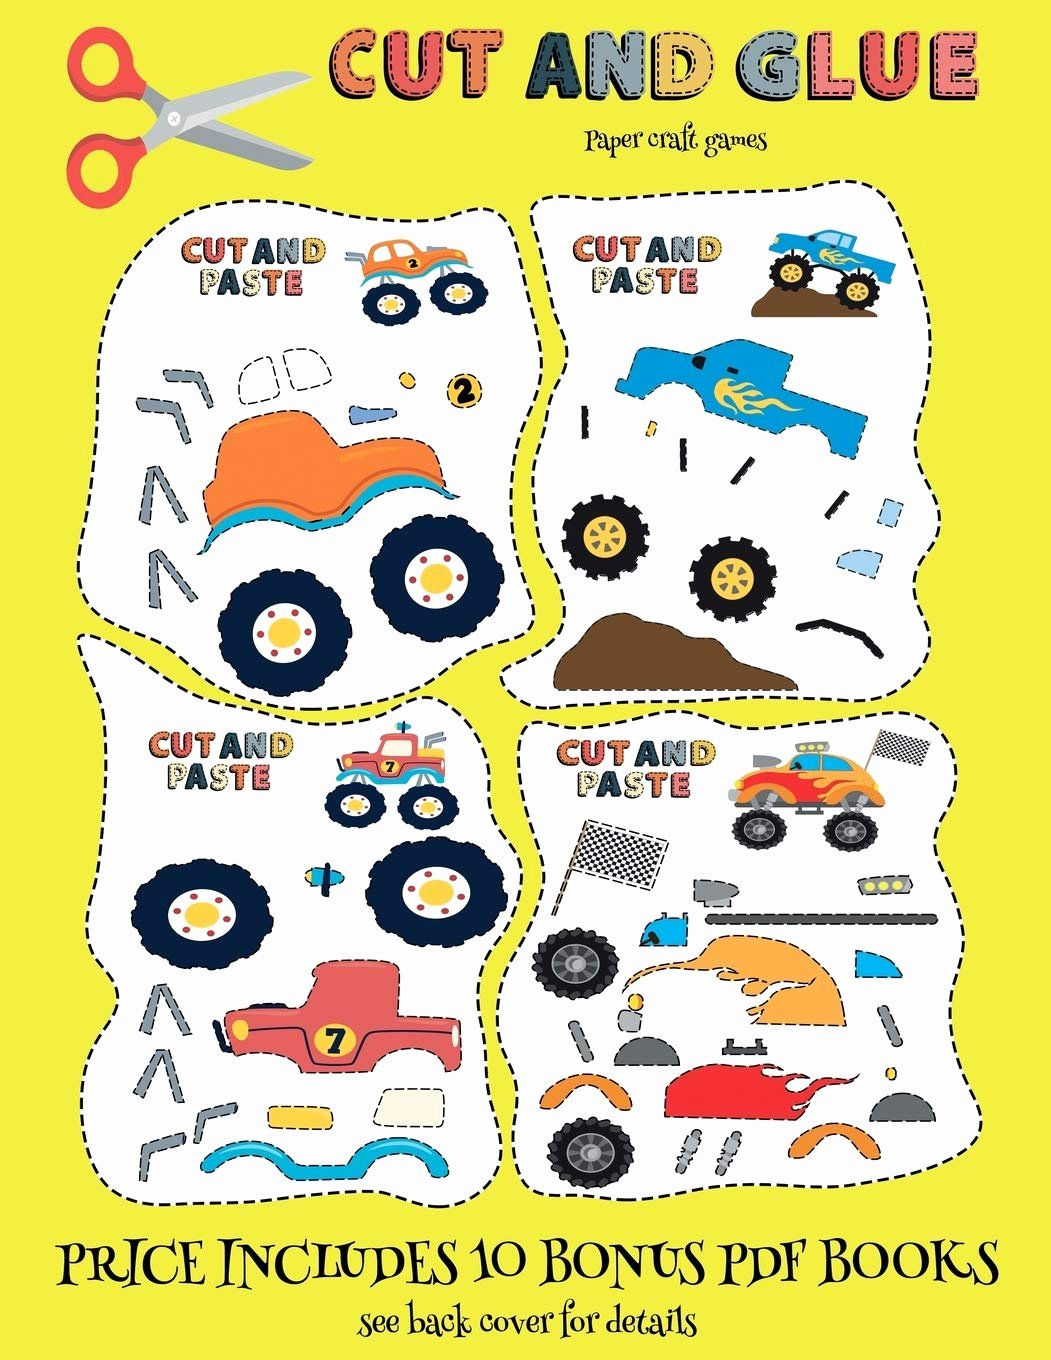 Eye Hand Coordination Activities Worksheets for Preschoolers New Paper Craft Games Cut and Glue Monster Trucks This Book